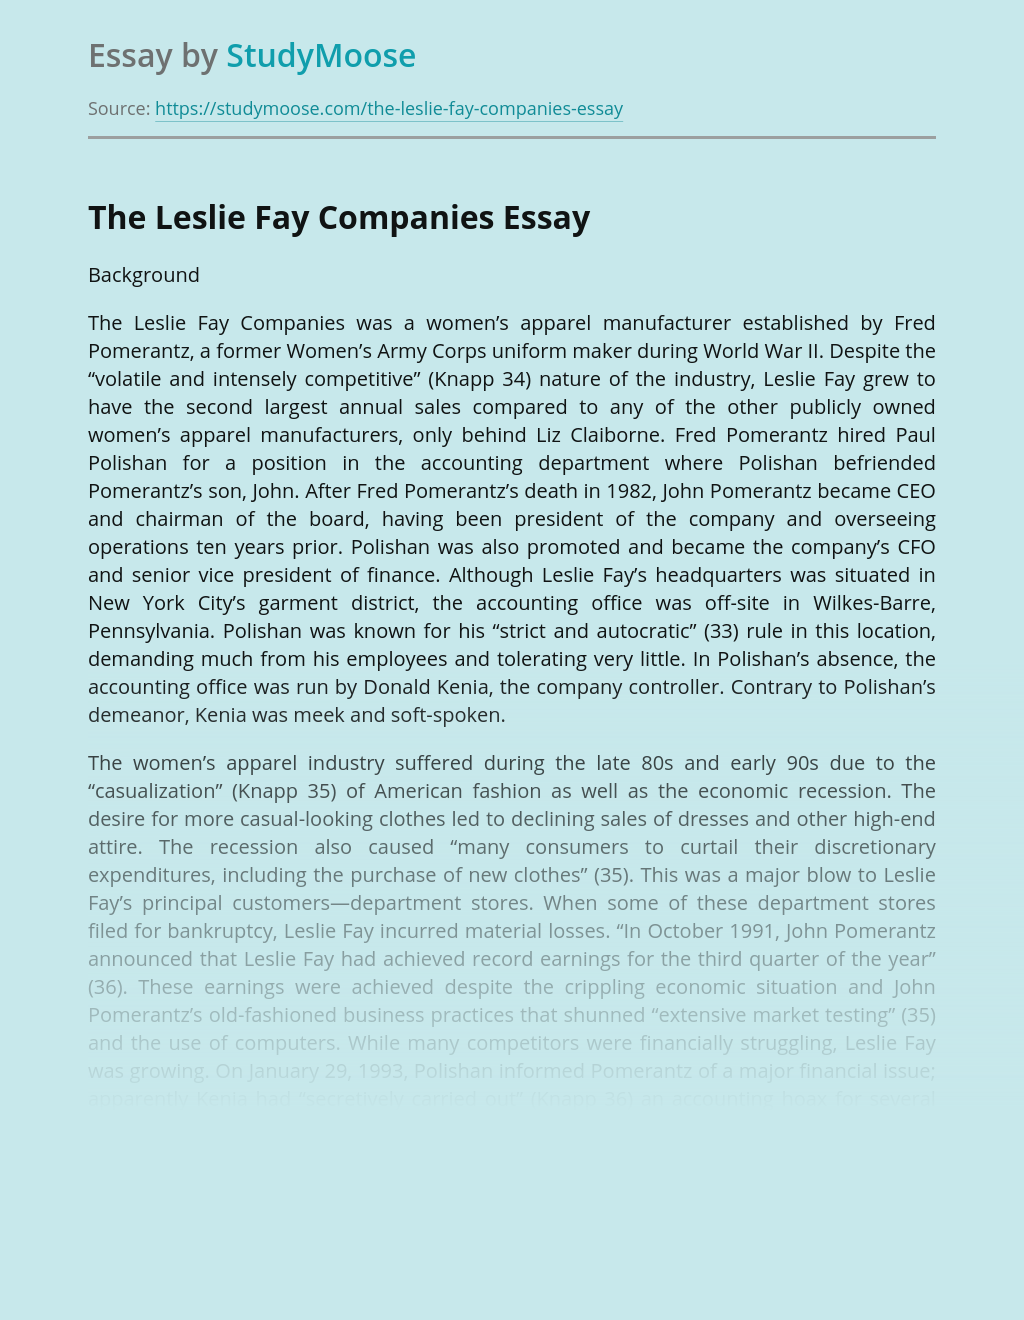 The Leslie Fay Companies